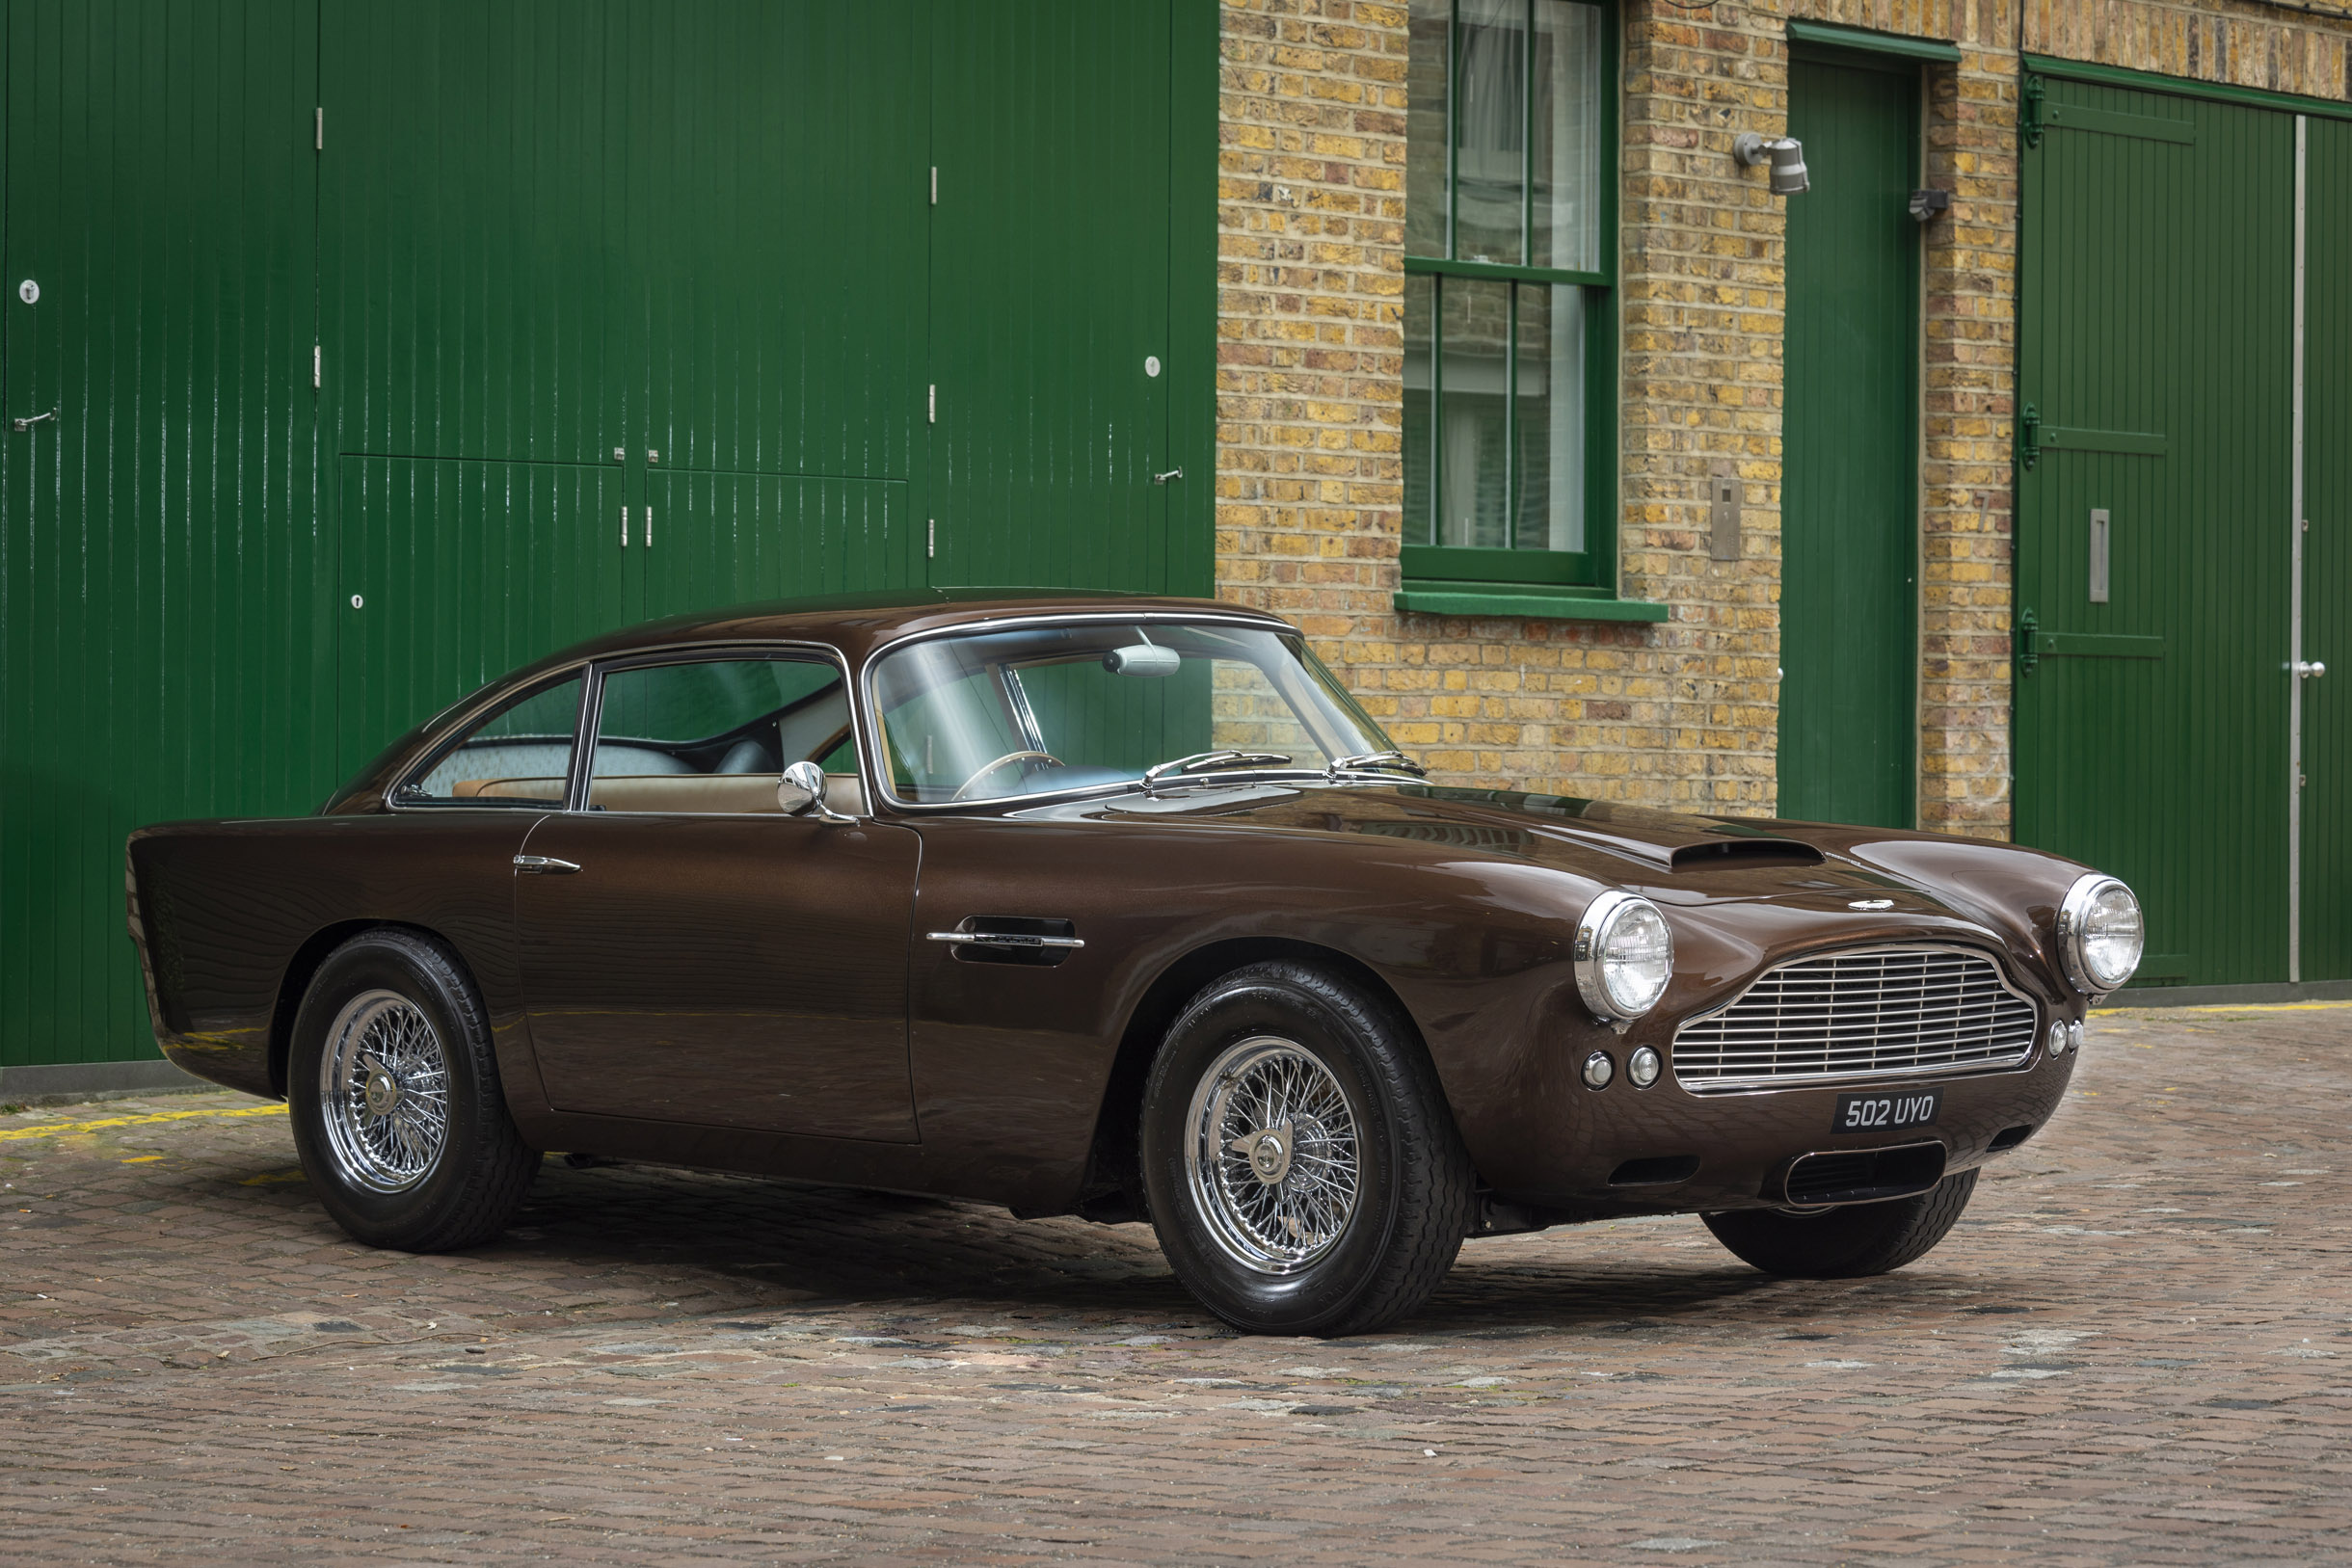 1962 Aston Martin Db4 Restored Upgraded To Sports Classics Specification Correct Matching Numbers Uk Eu Registration Classic Driver Market